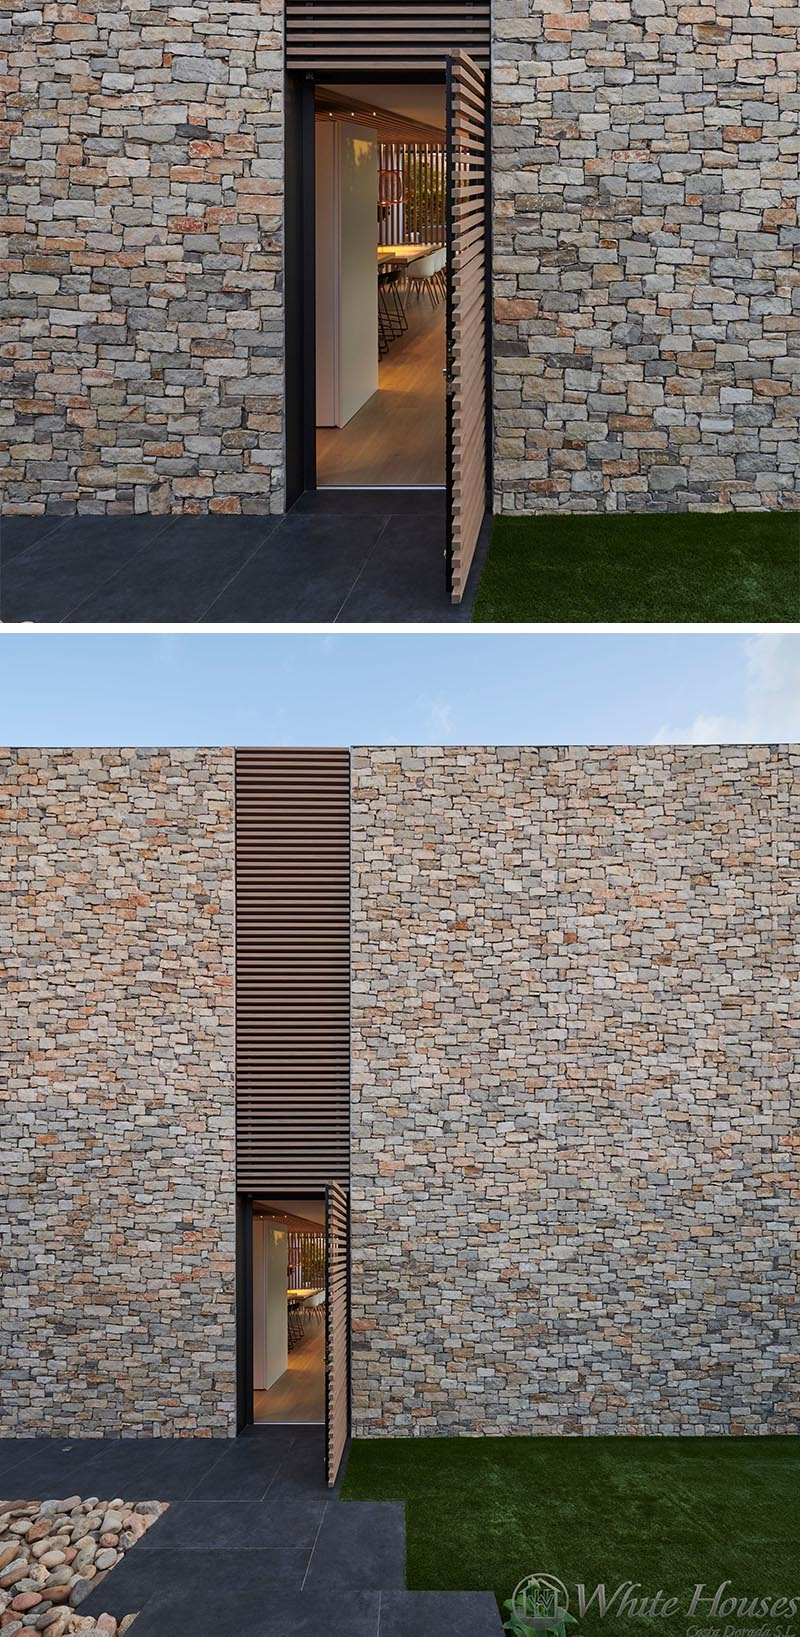 This modern house has a wood slat detail that not only provides visual interest on the facade, but it also hides a door that opens to the interior of the house. #WoodSlat #Facade #ModernHouse #StoneHouse #WoodAccent #Architecture #Doors